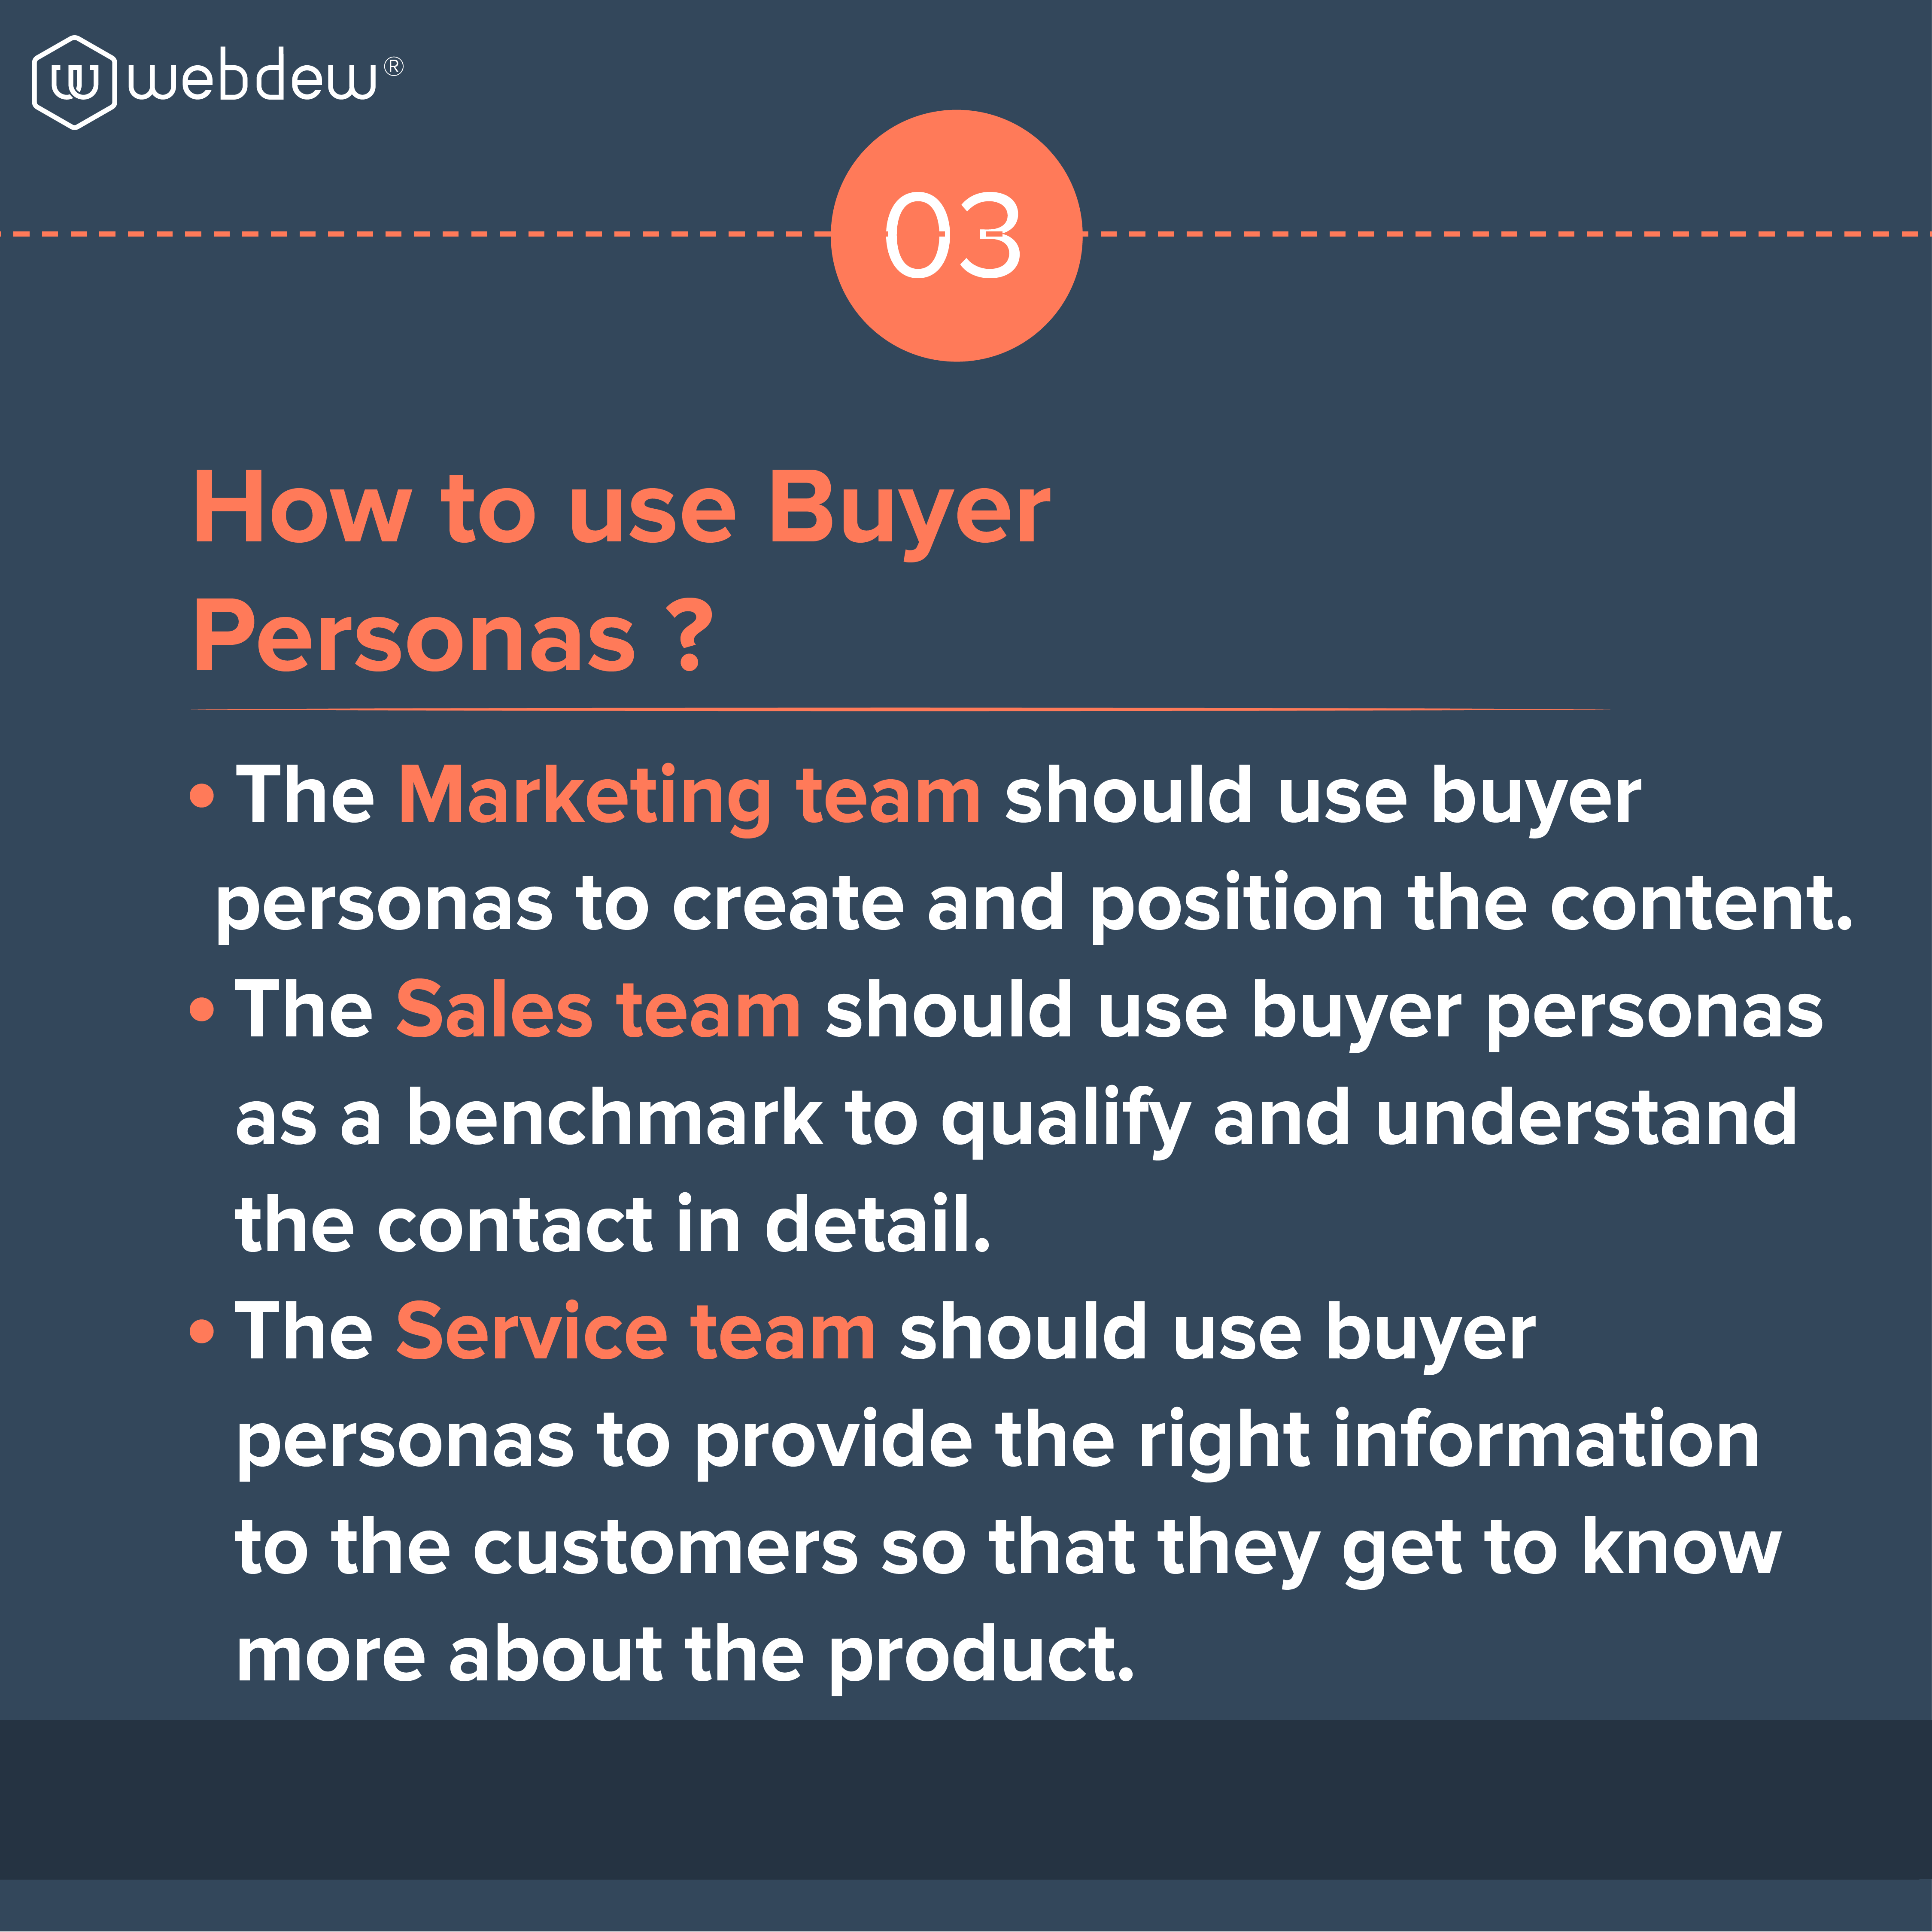 3. how to use buyer persona